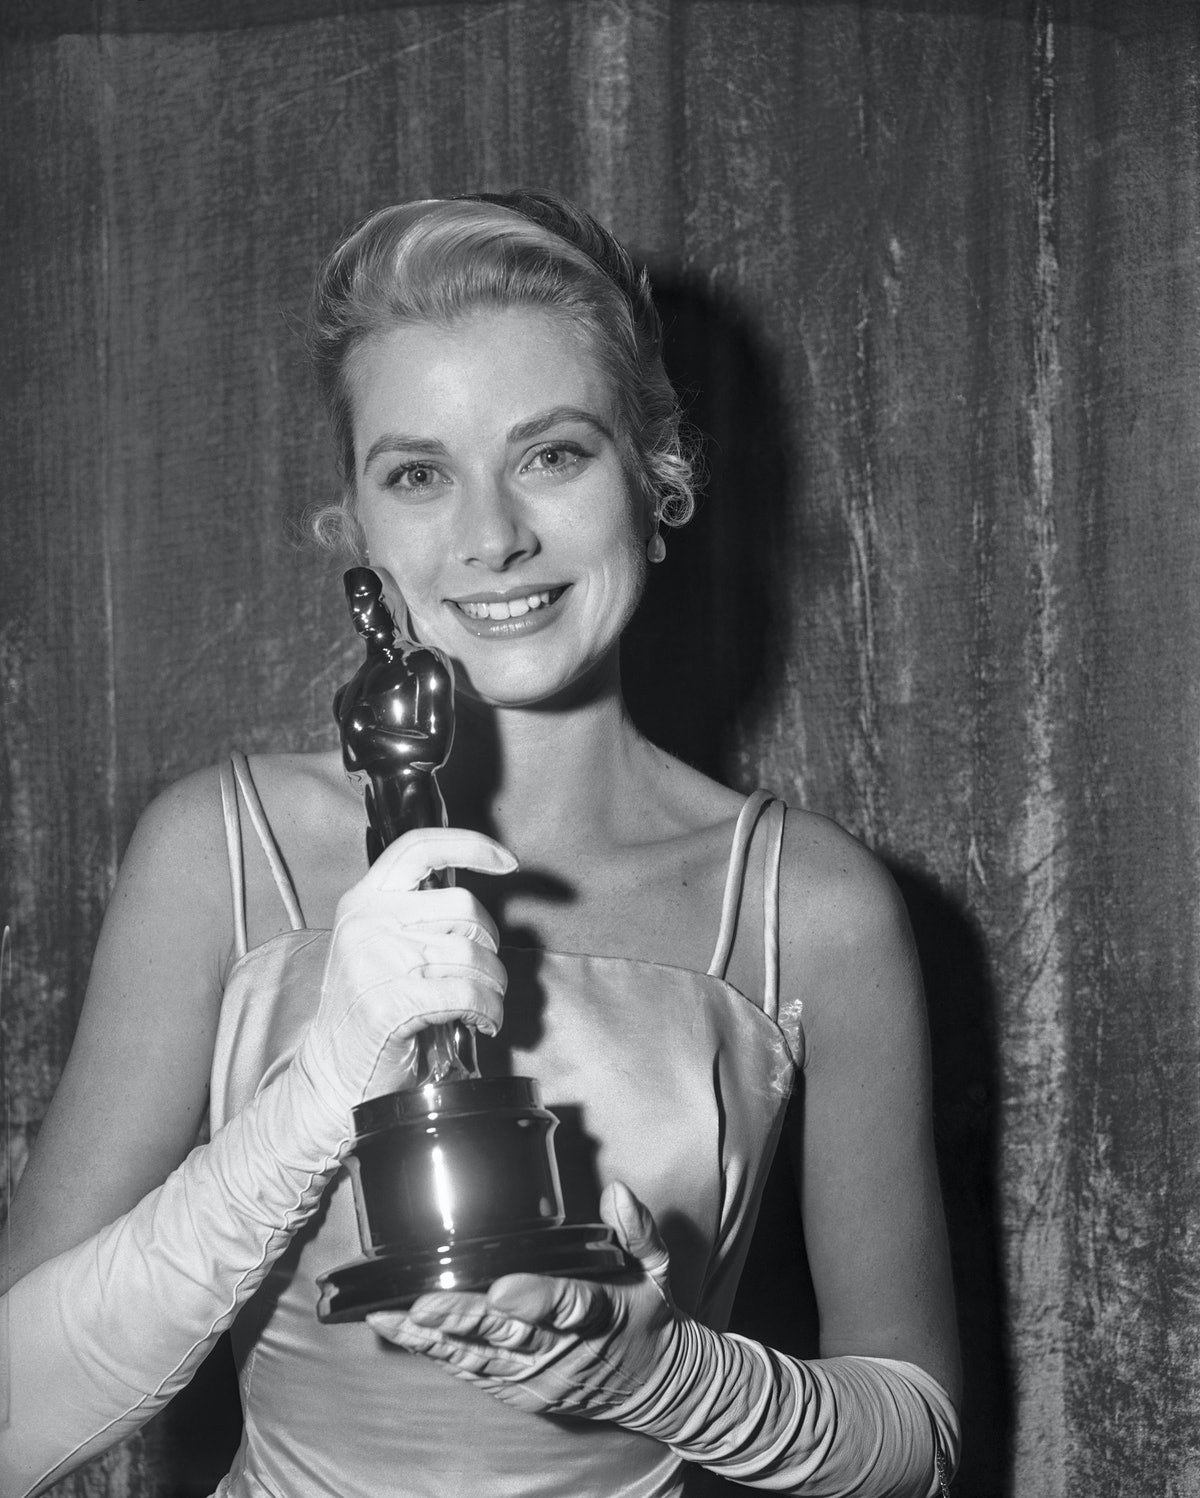 (Original Caption) Pride and Some Mutual Admiration. Hollywood, Los Angeles, California: At left above is a close up of actress Grace Kelly hugging her Oscar after she was honored as the best actress of 1954 at the 27th Academy Awards. She won the prize for her role in The Country Girl. At right, Oscar winning Kelly is kissed by Oscar winner Marlon Brando, who got the Oscar as the best actor for his role in On the Waterfront.